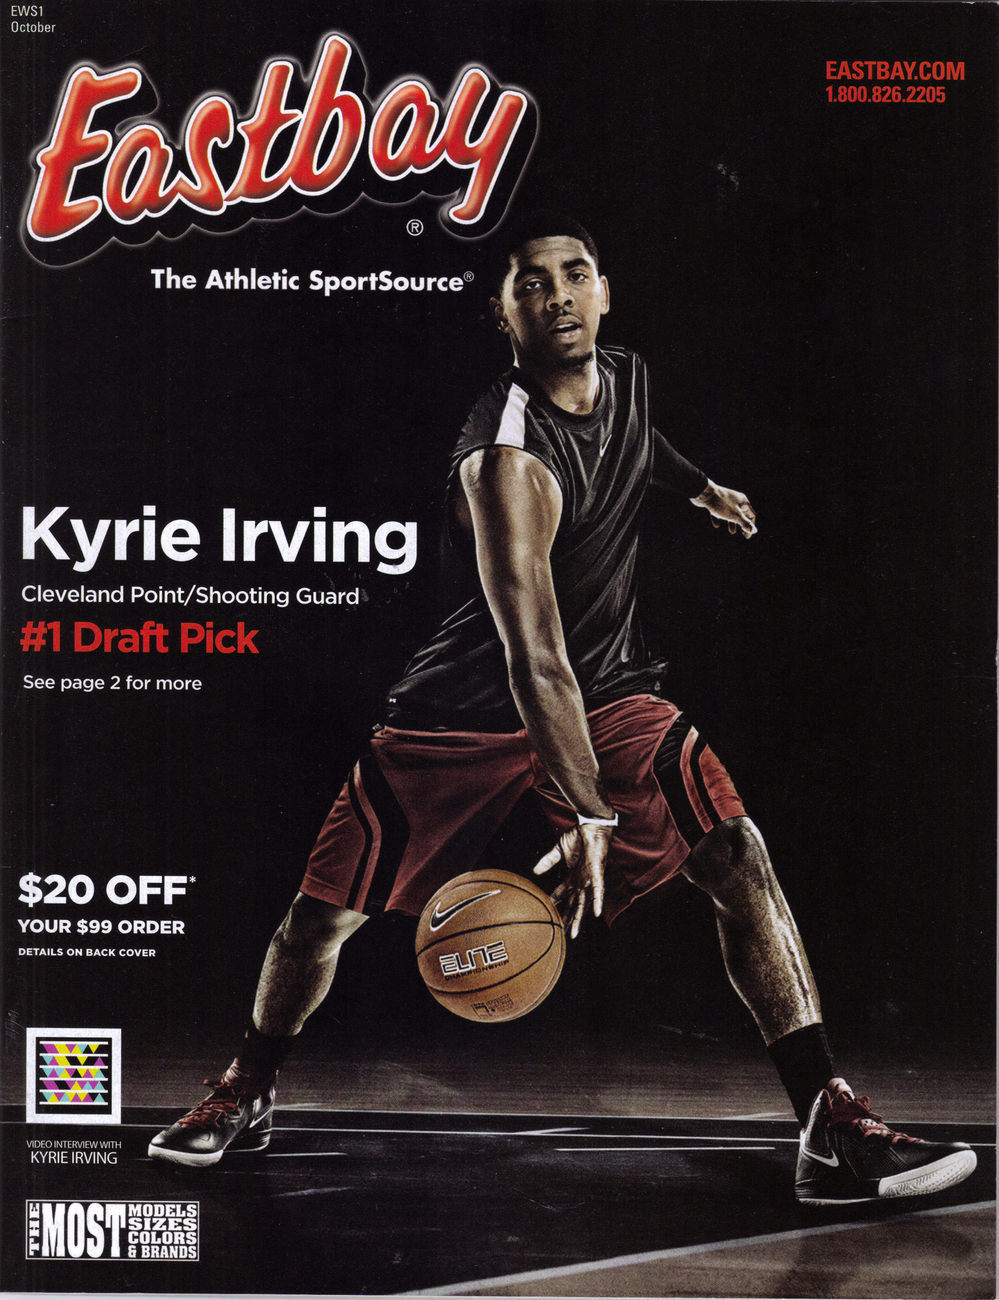 KYRIE IRVING @ EASTBAY Catalog, New